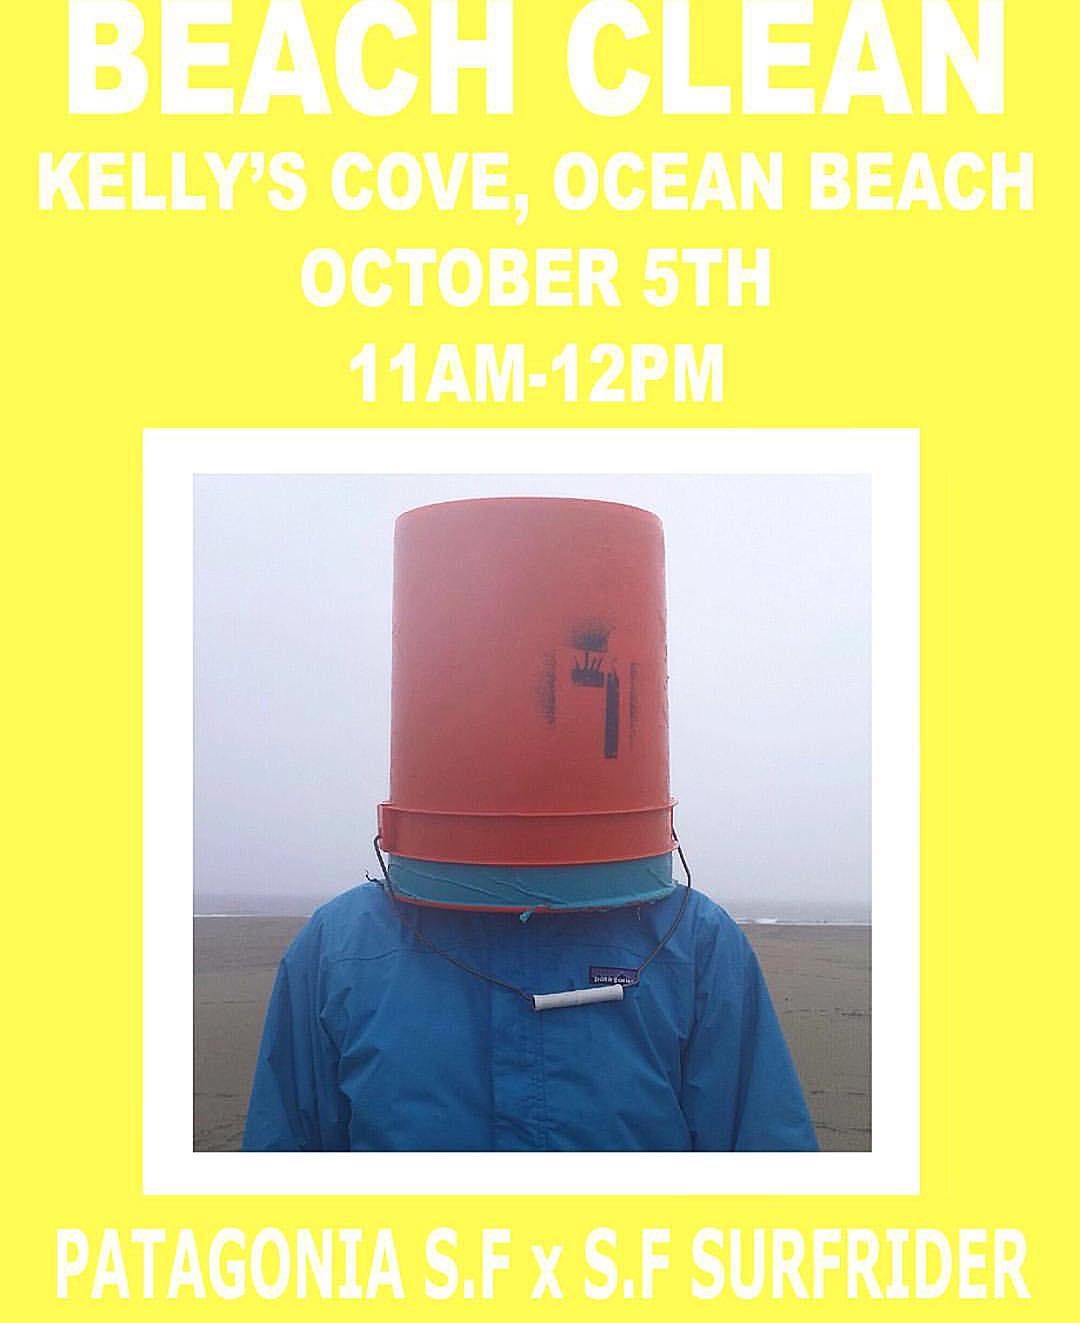 Beach Clean tomorrow Monday Oct 5th 11-12noon Kelly's Cove by @patagoniasf + #sfsurfrider #beachcleanup #sanfrancisco #riseaboveplastics #sf